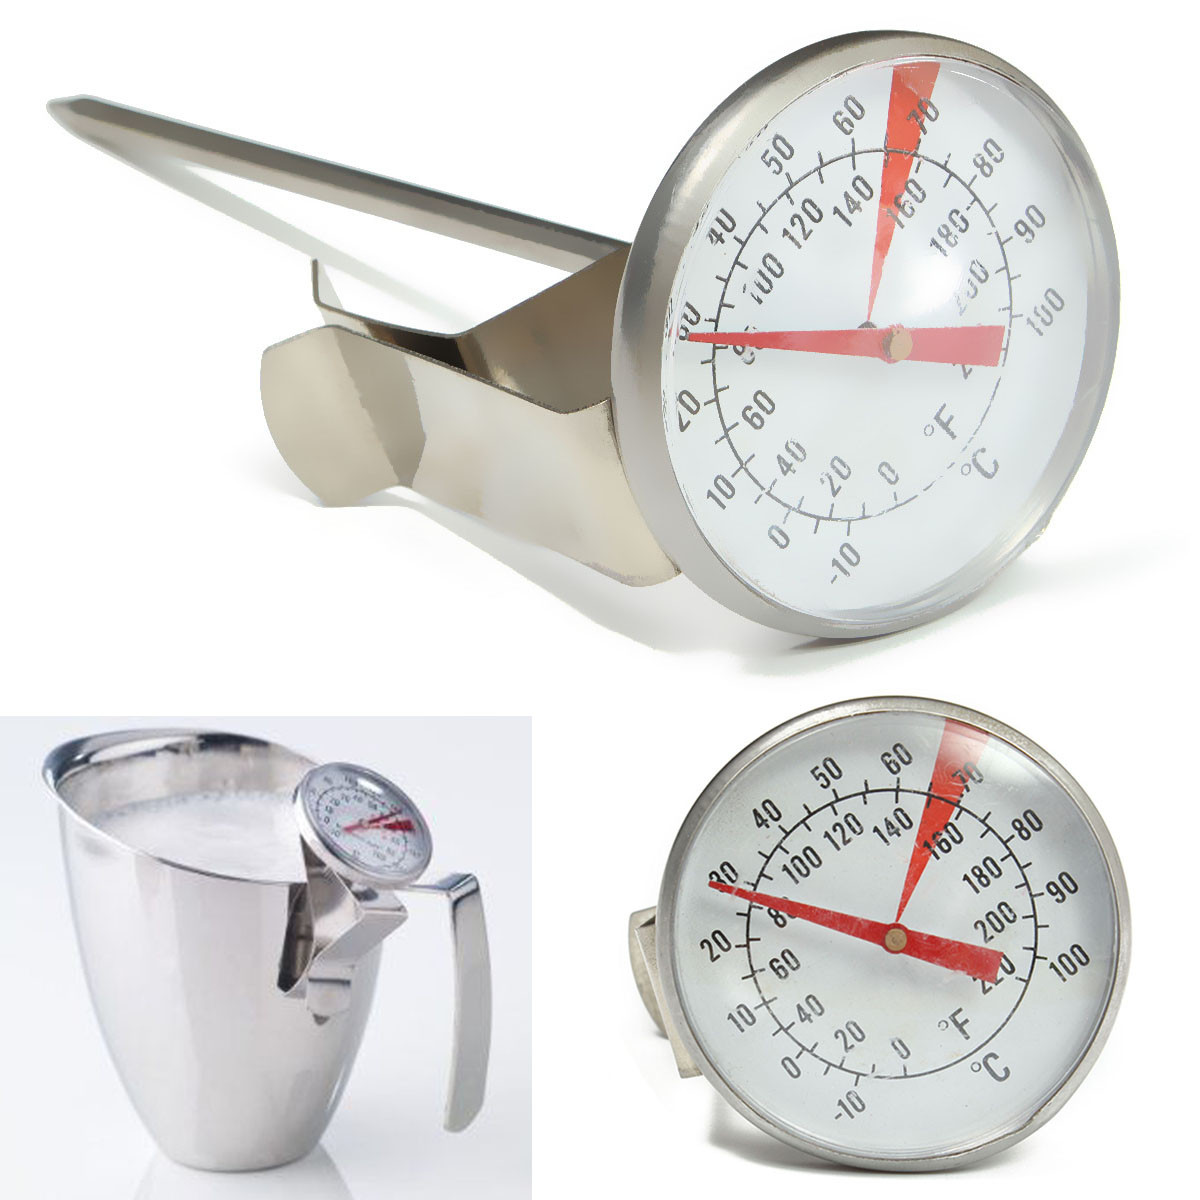 Stainless Steel Thermometer Kitchen Cooking Food Probe Milk Coffee Liqued Meat Gauge Household Thermometers Clip Baking Tools